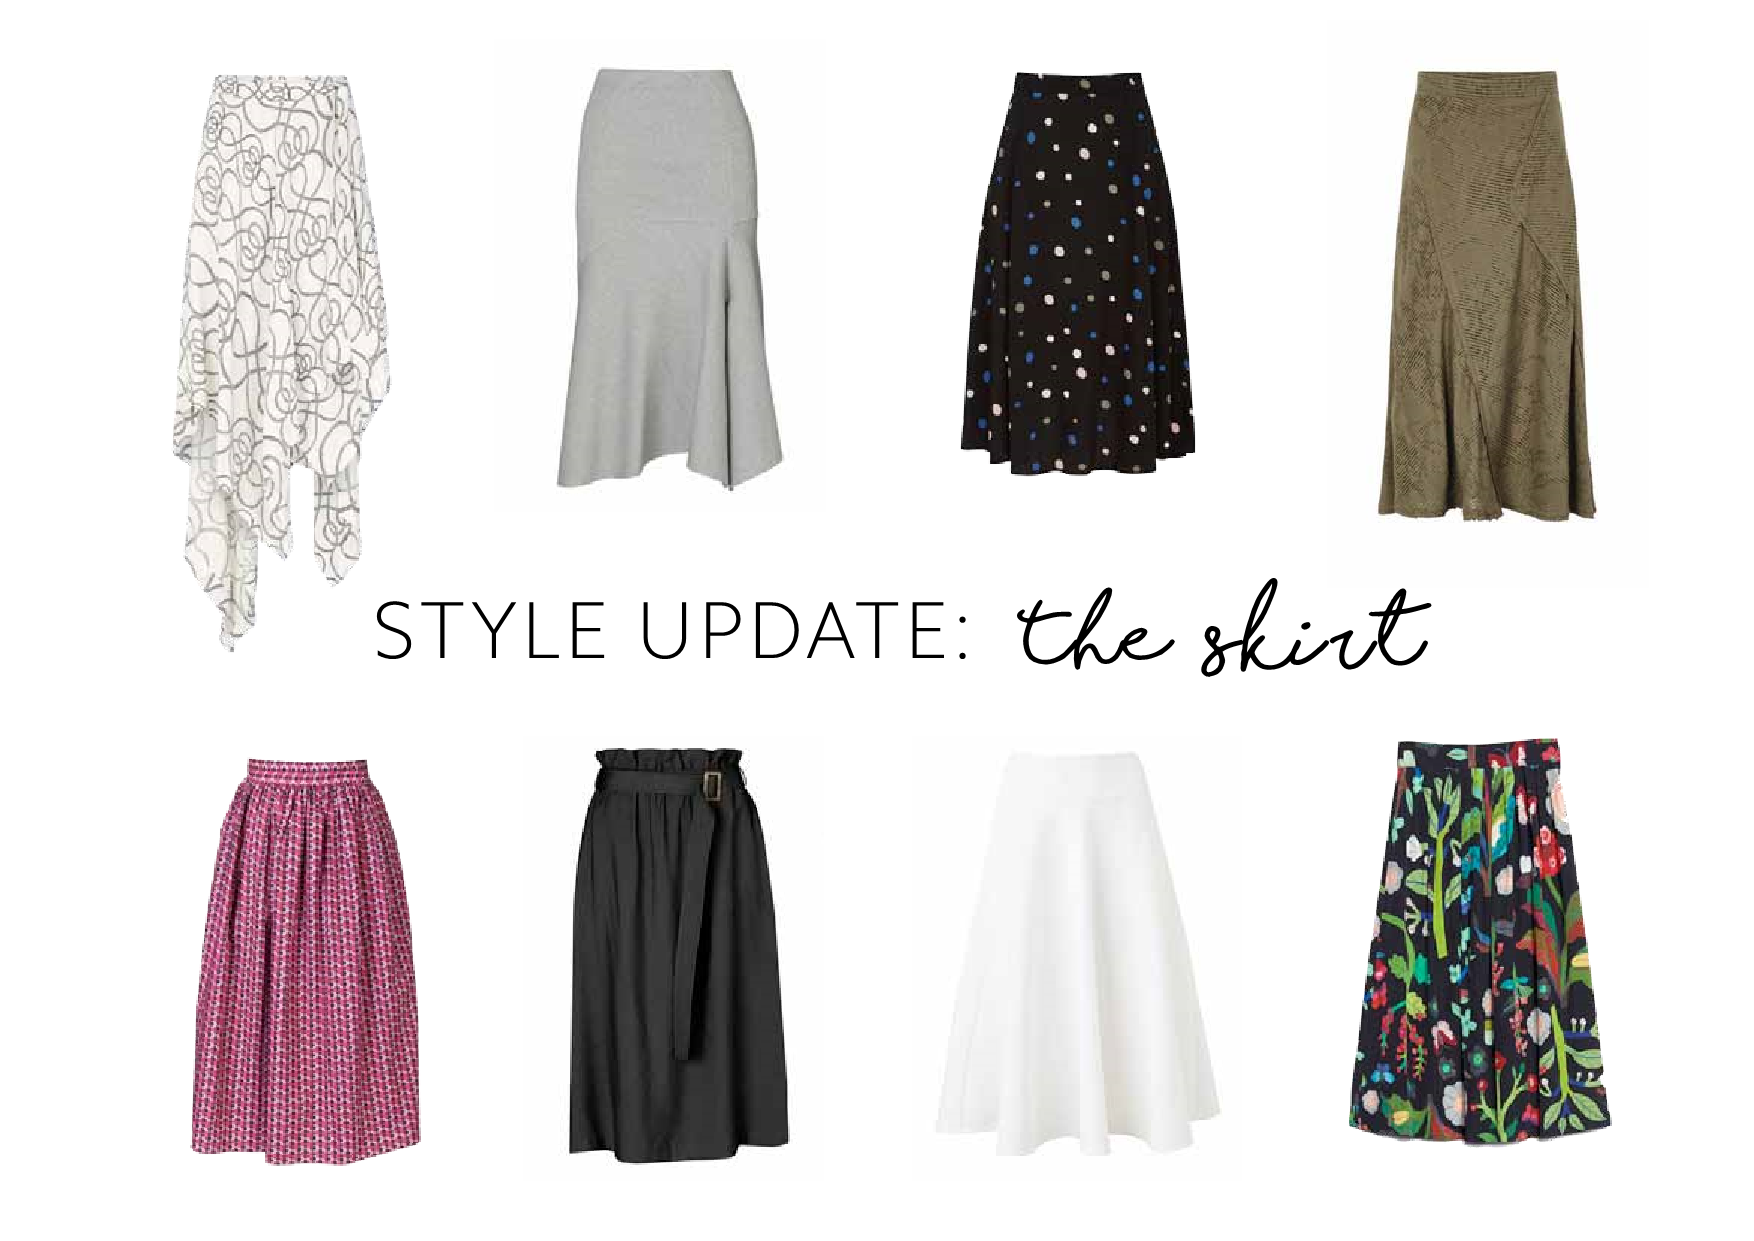 Style Update: The Skirt